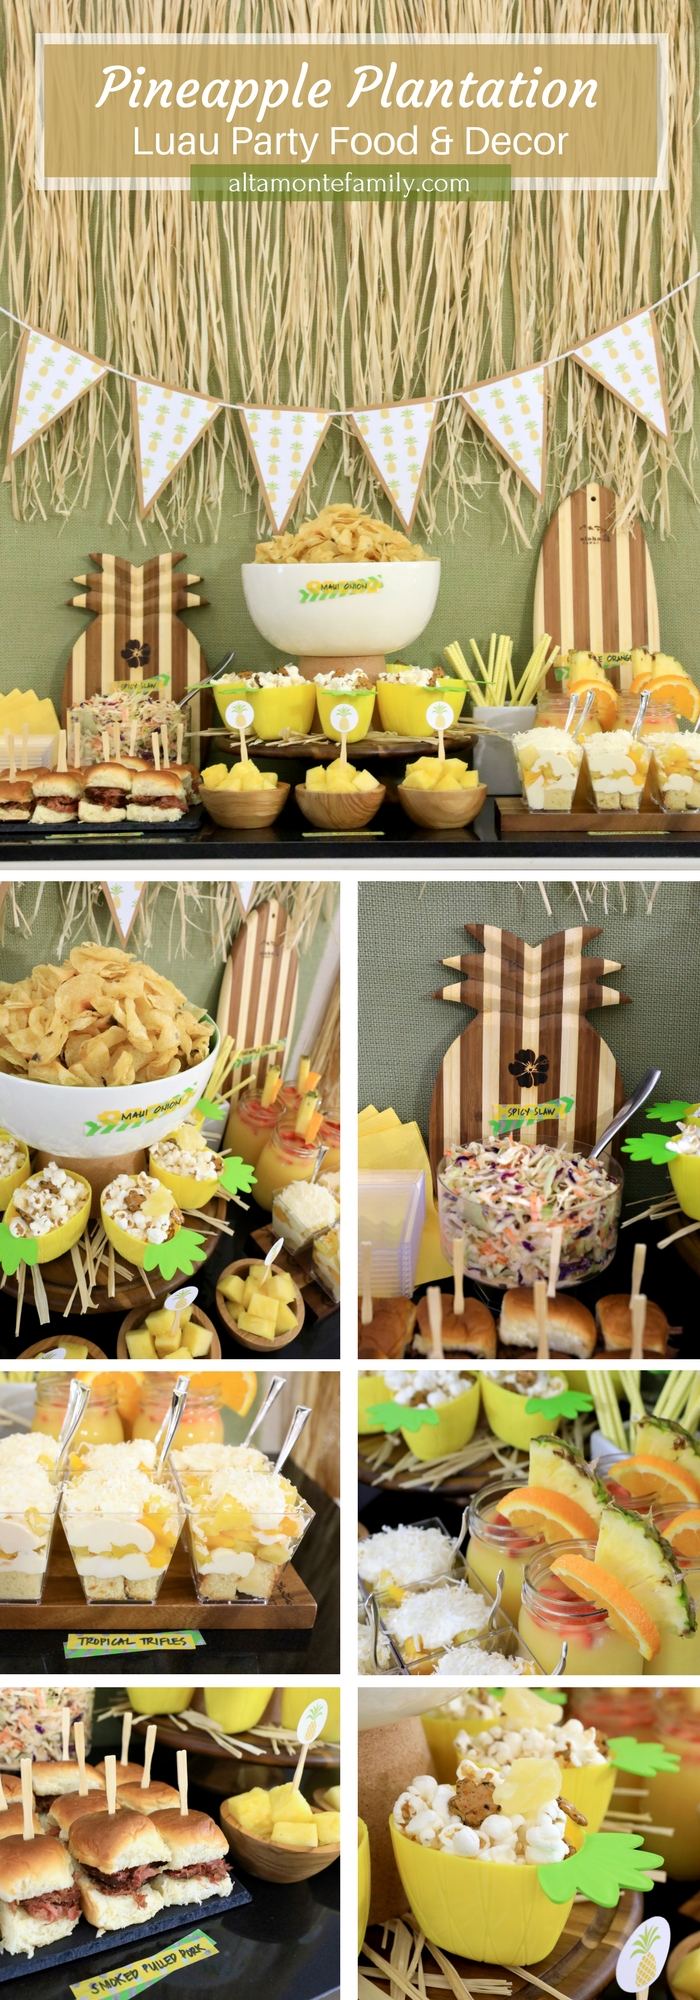 Luau Party Ideas Food and Decor - Pineapple Plantation Theme